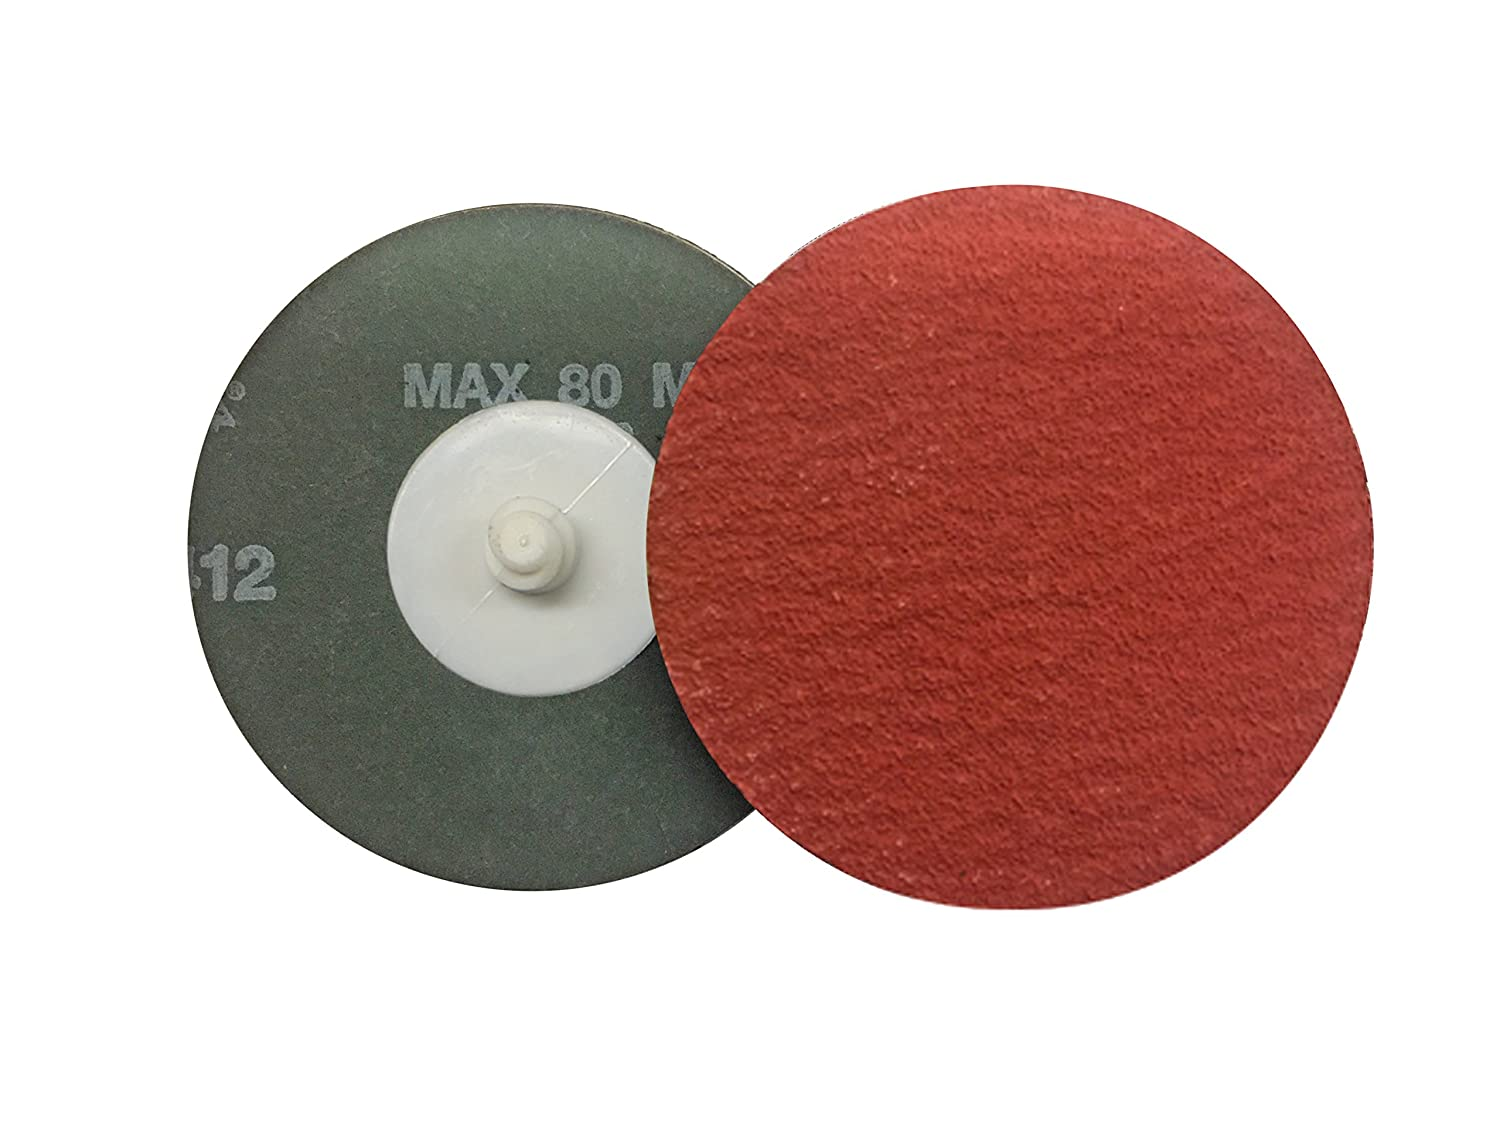 VSM 2' Quick Change Resin Fiber Disc, 120 Grit, XF885 Ceramic+, Quick Change Type R, Fiber Backing, Pack of 25 VSM Abrasives Co. 150175